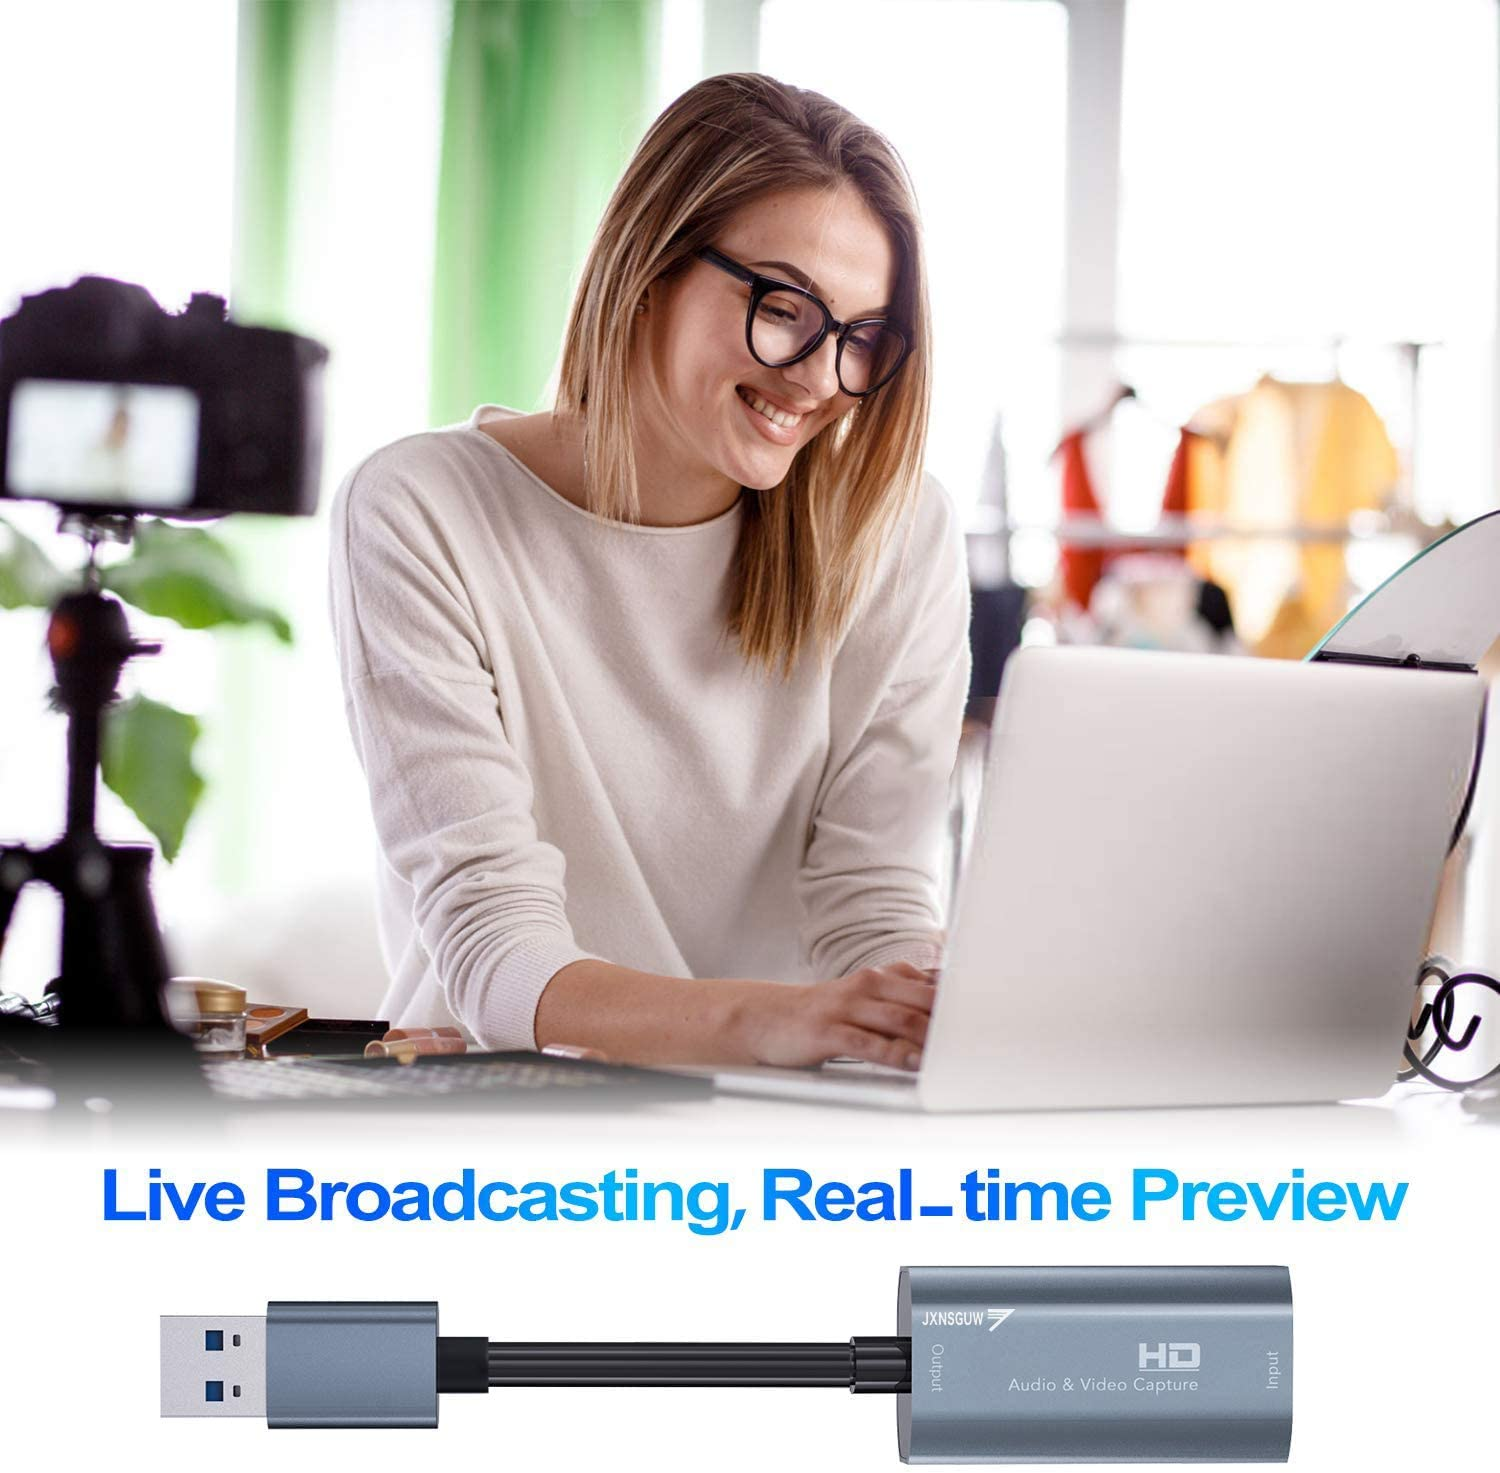 HDMI Video Capture Card Streaming Teaching Video Conference Live Broadcasting Compatible with VLC//OBS//Amcap USB2.0 1080P 30fps Record via DSLR Camcorder Action Cam for High Definition Acquisition